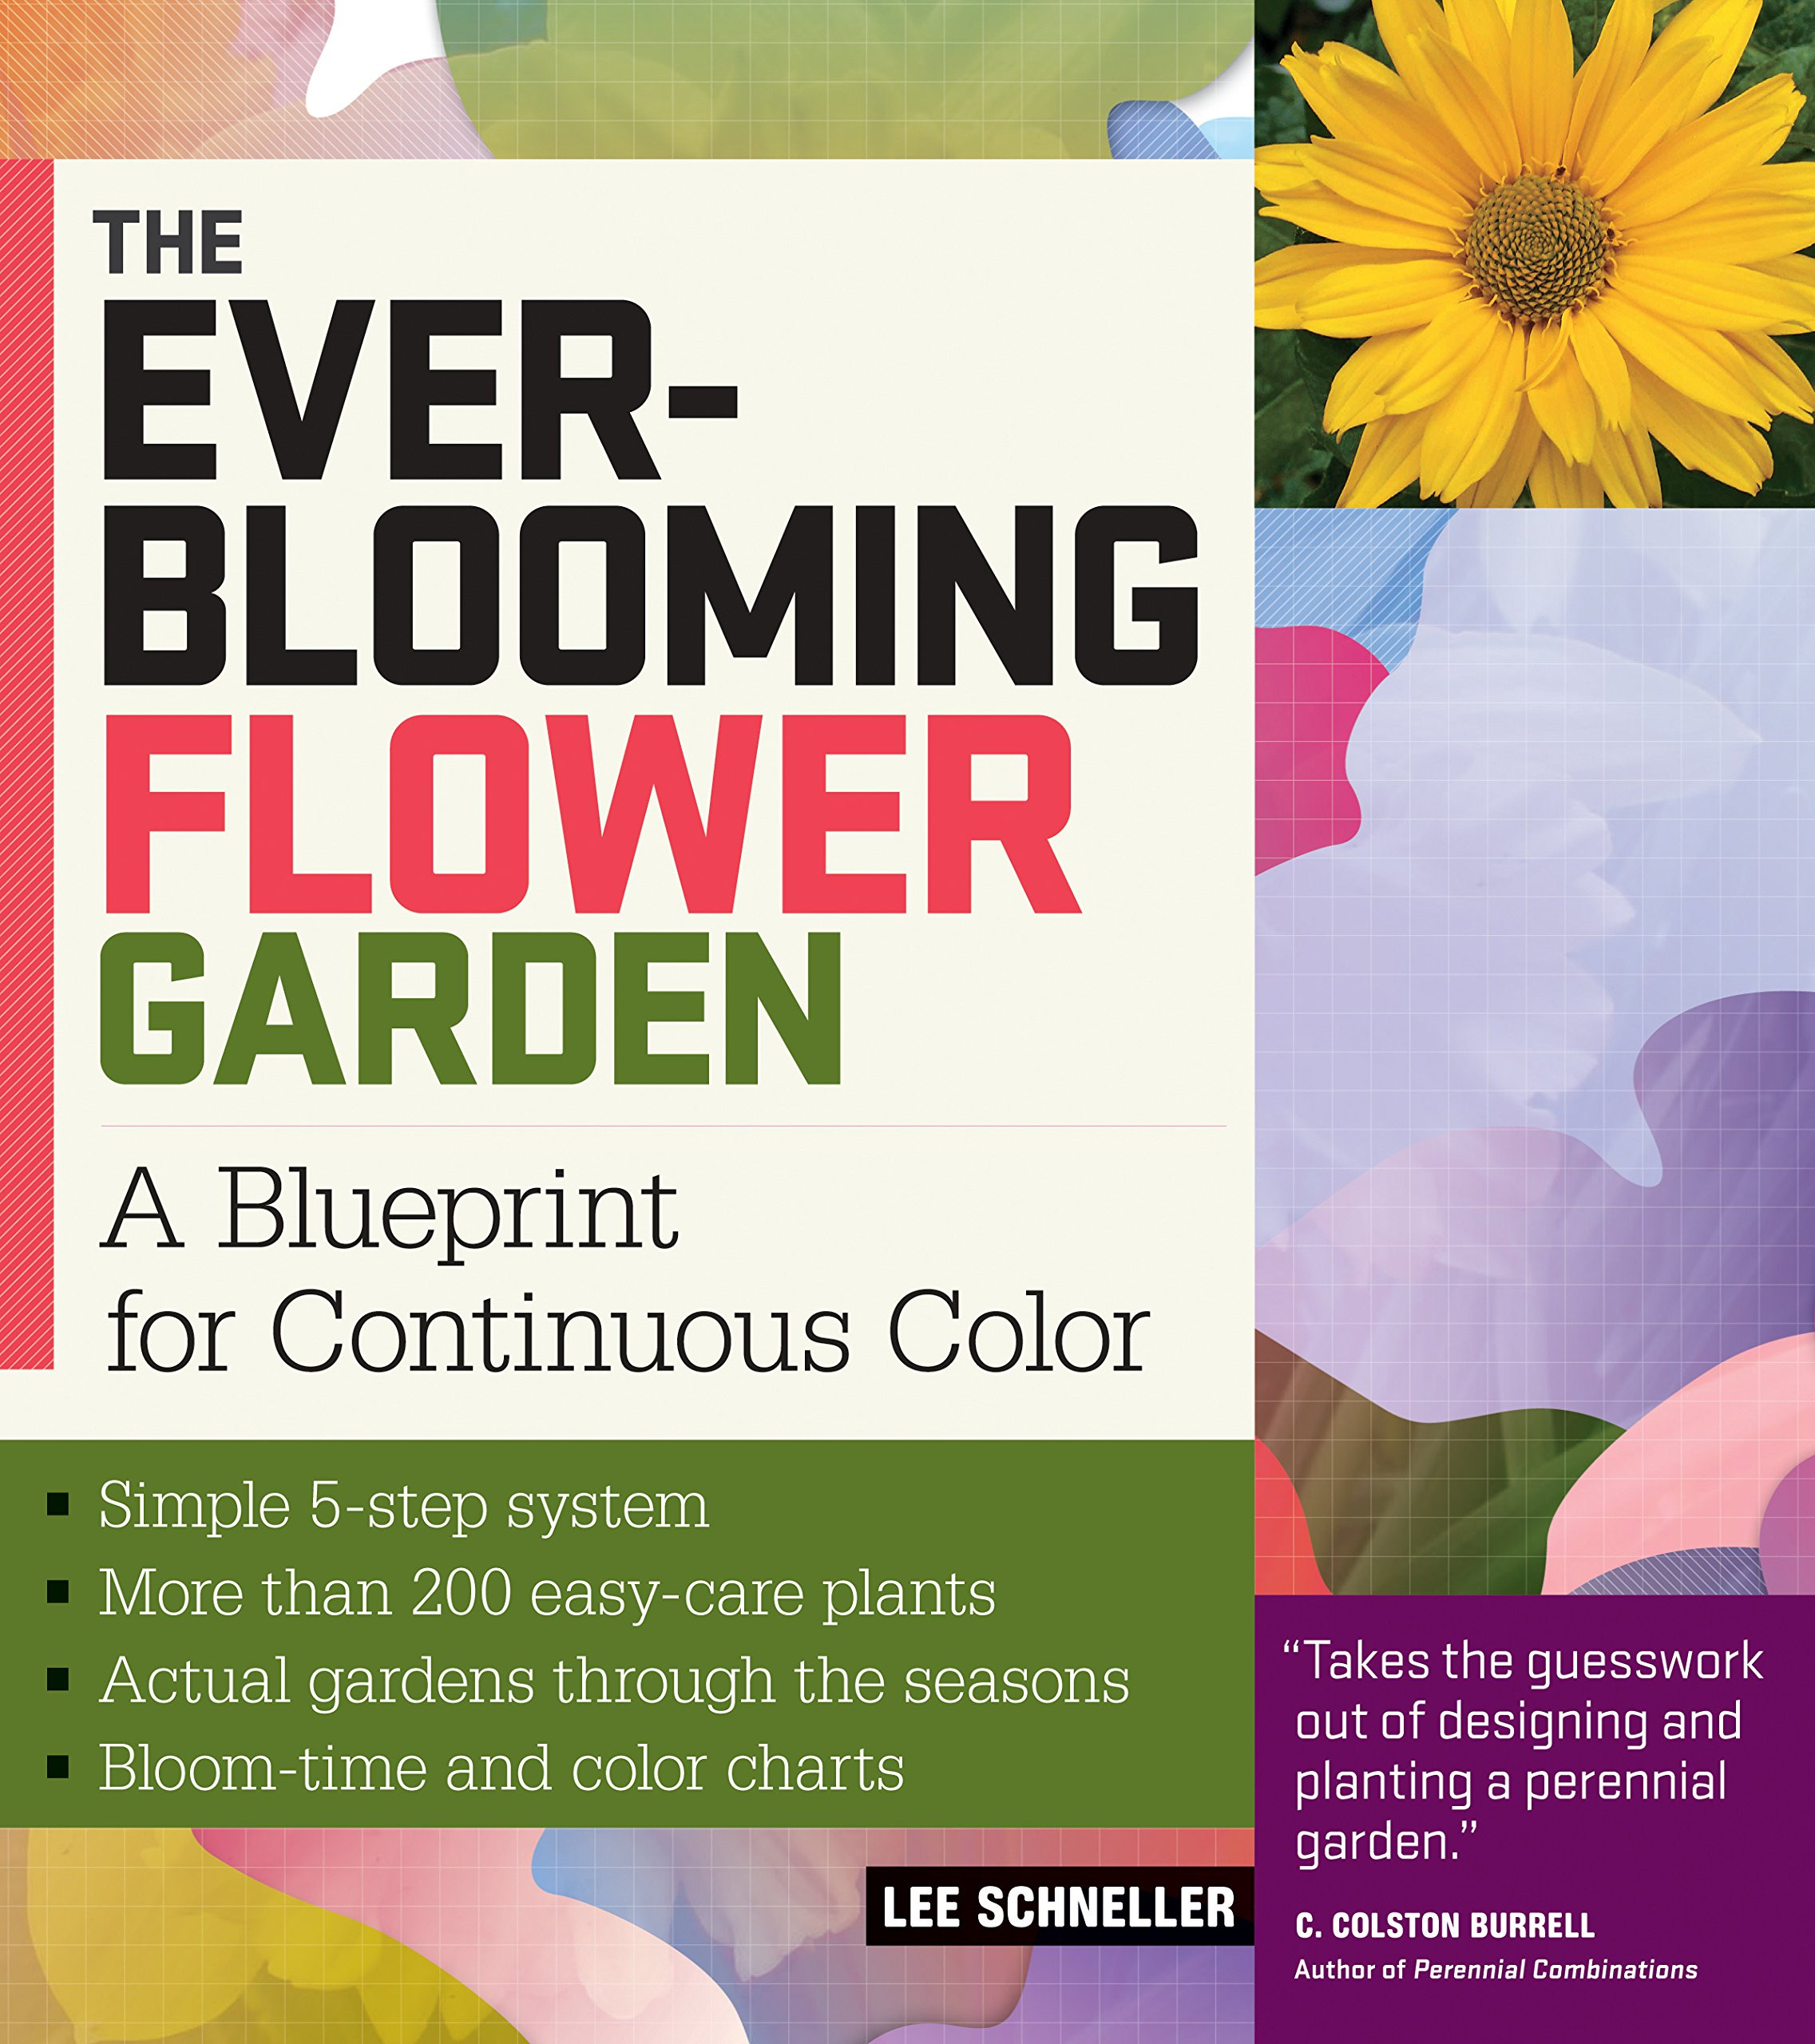 The Ever Blooming Flower Garden A Blueprint for Continuous Color Lee Schneller Amazon Books